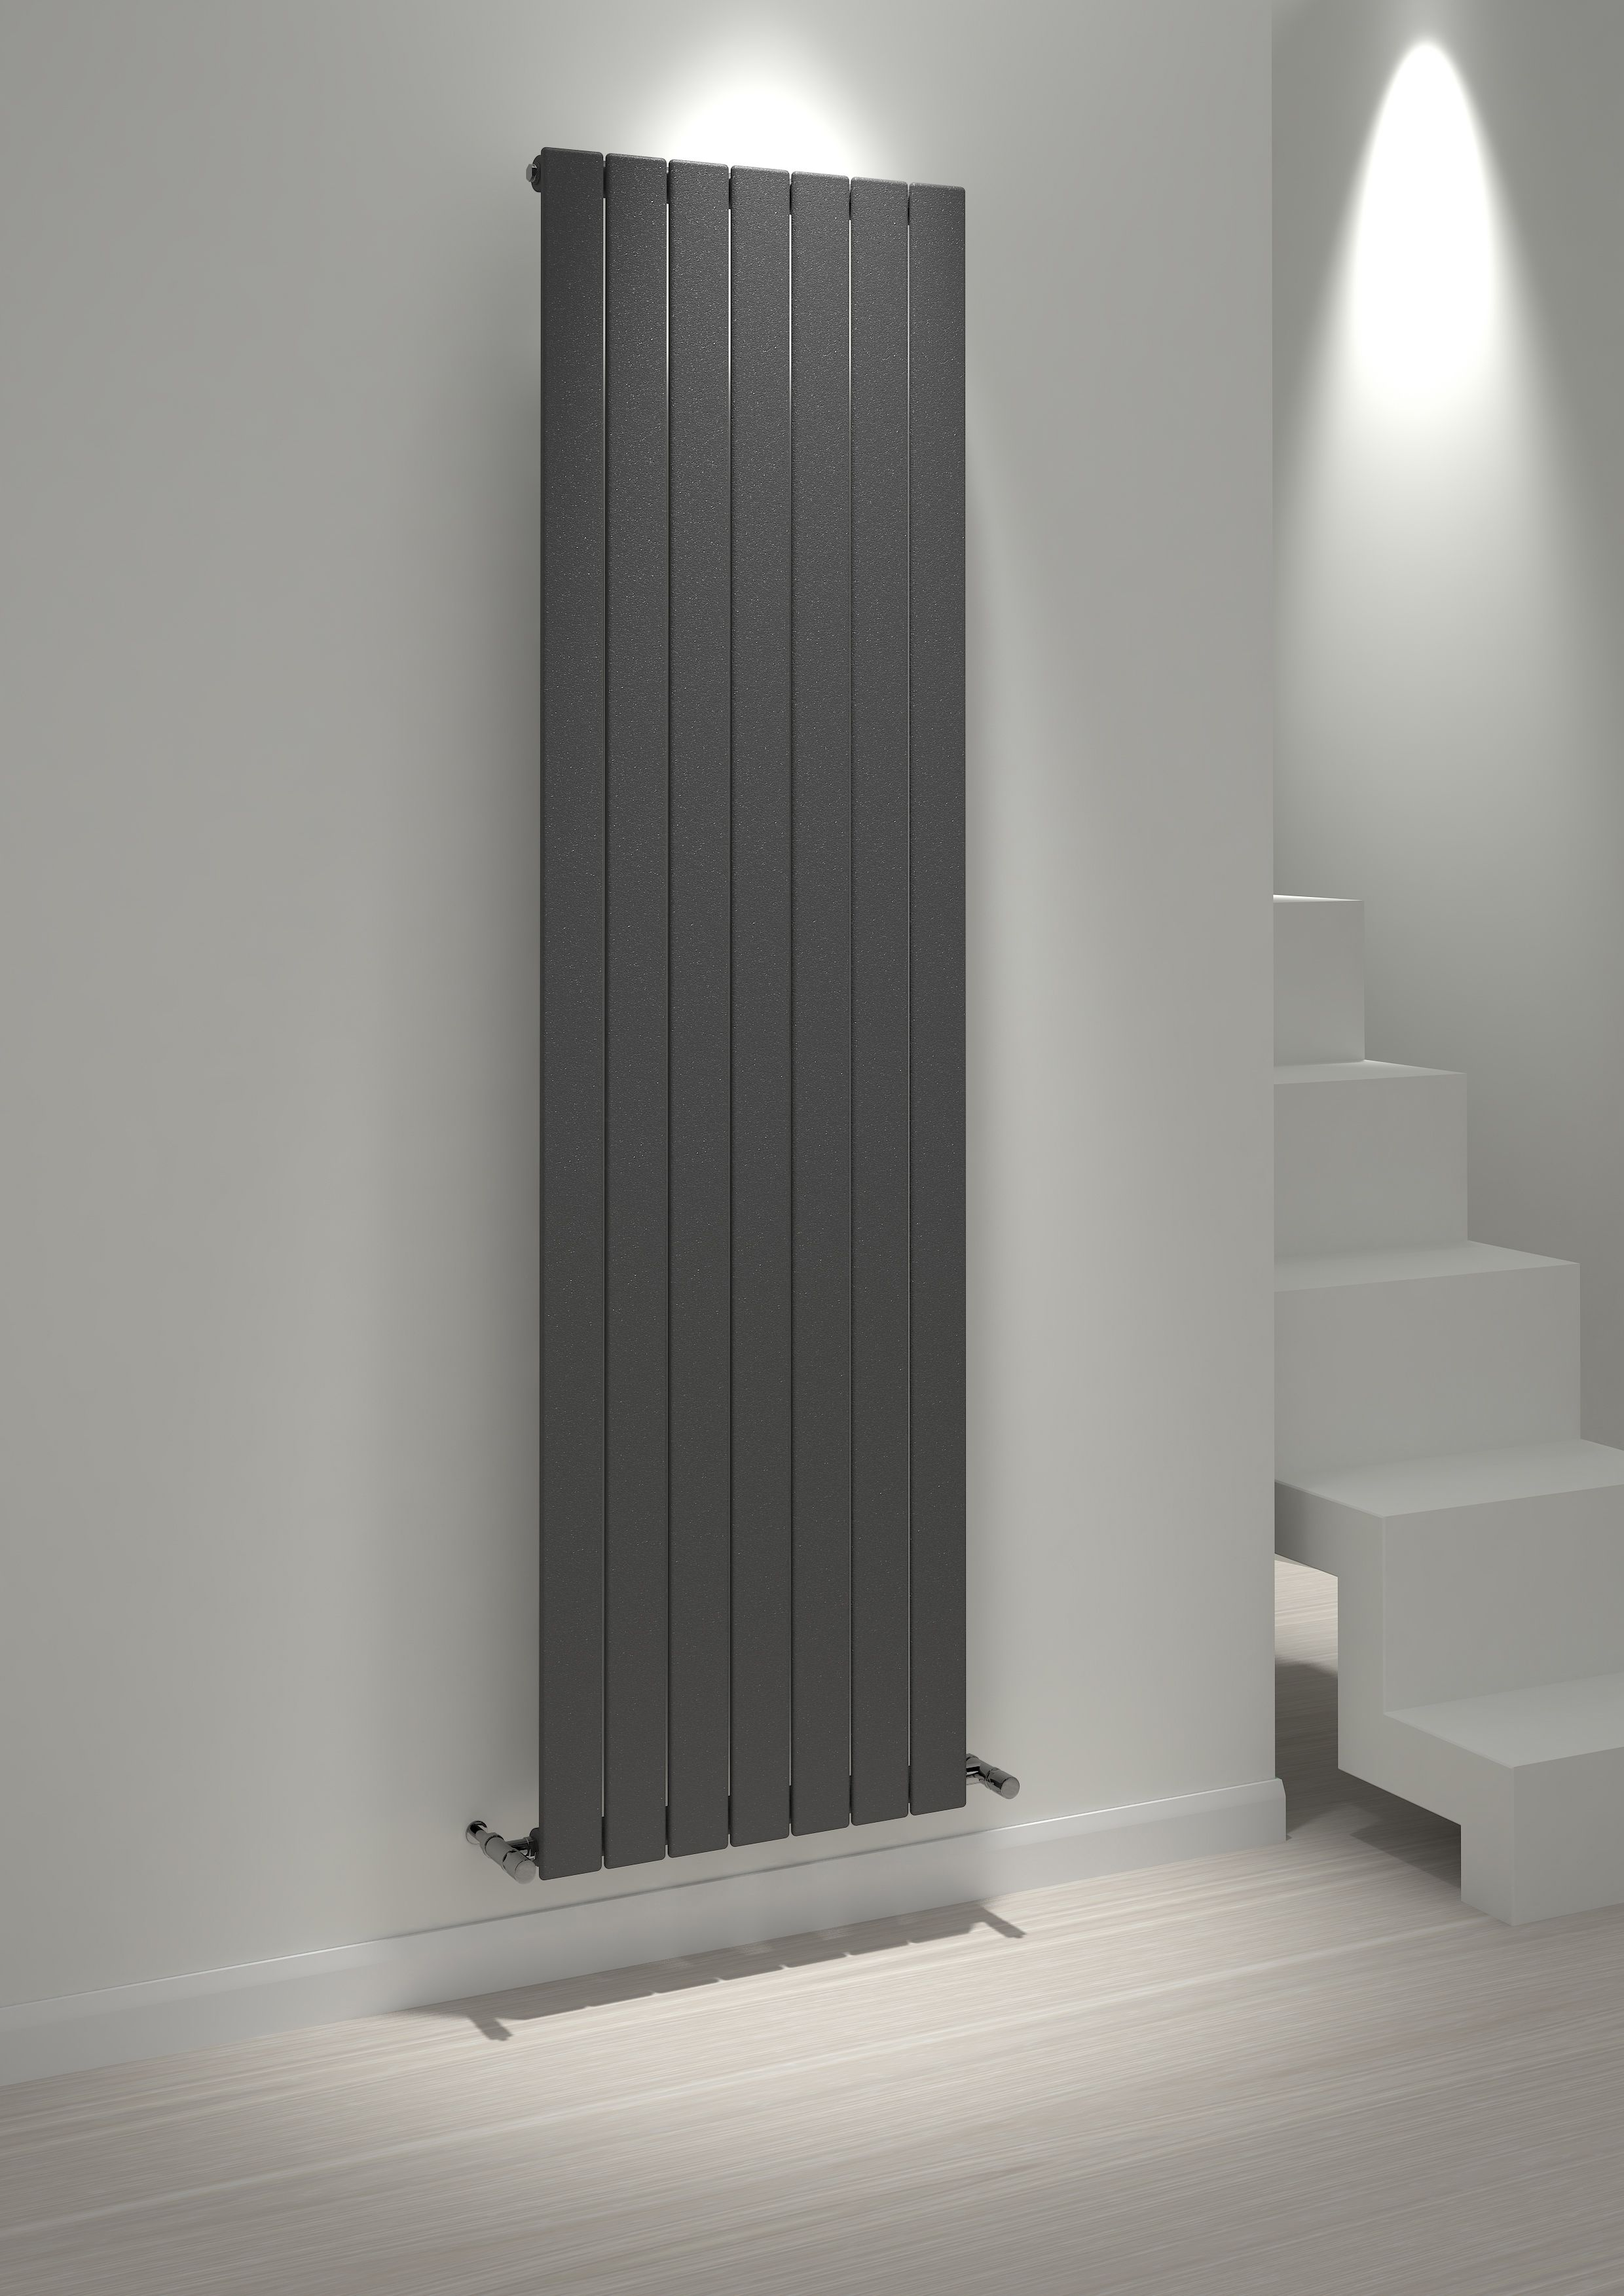 Kudox Alulite Vertical radiators, Central heating system